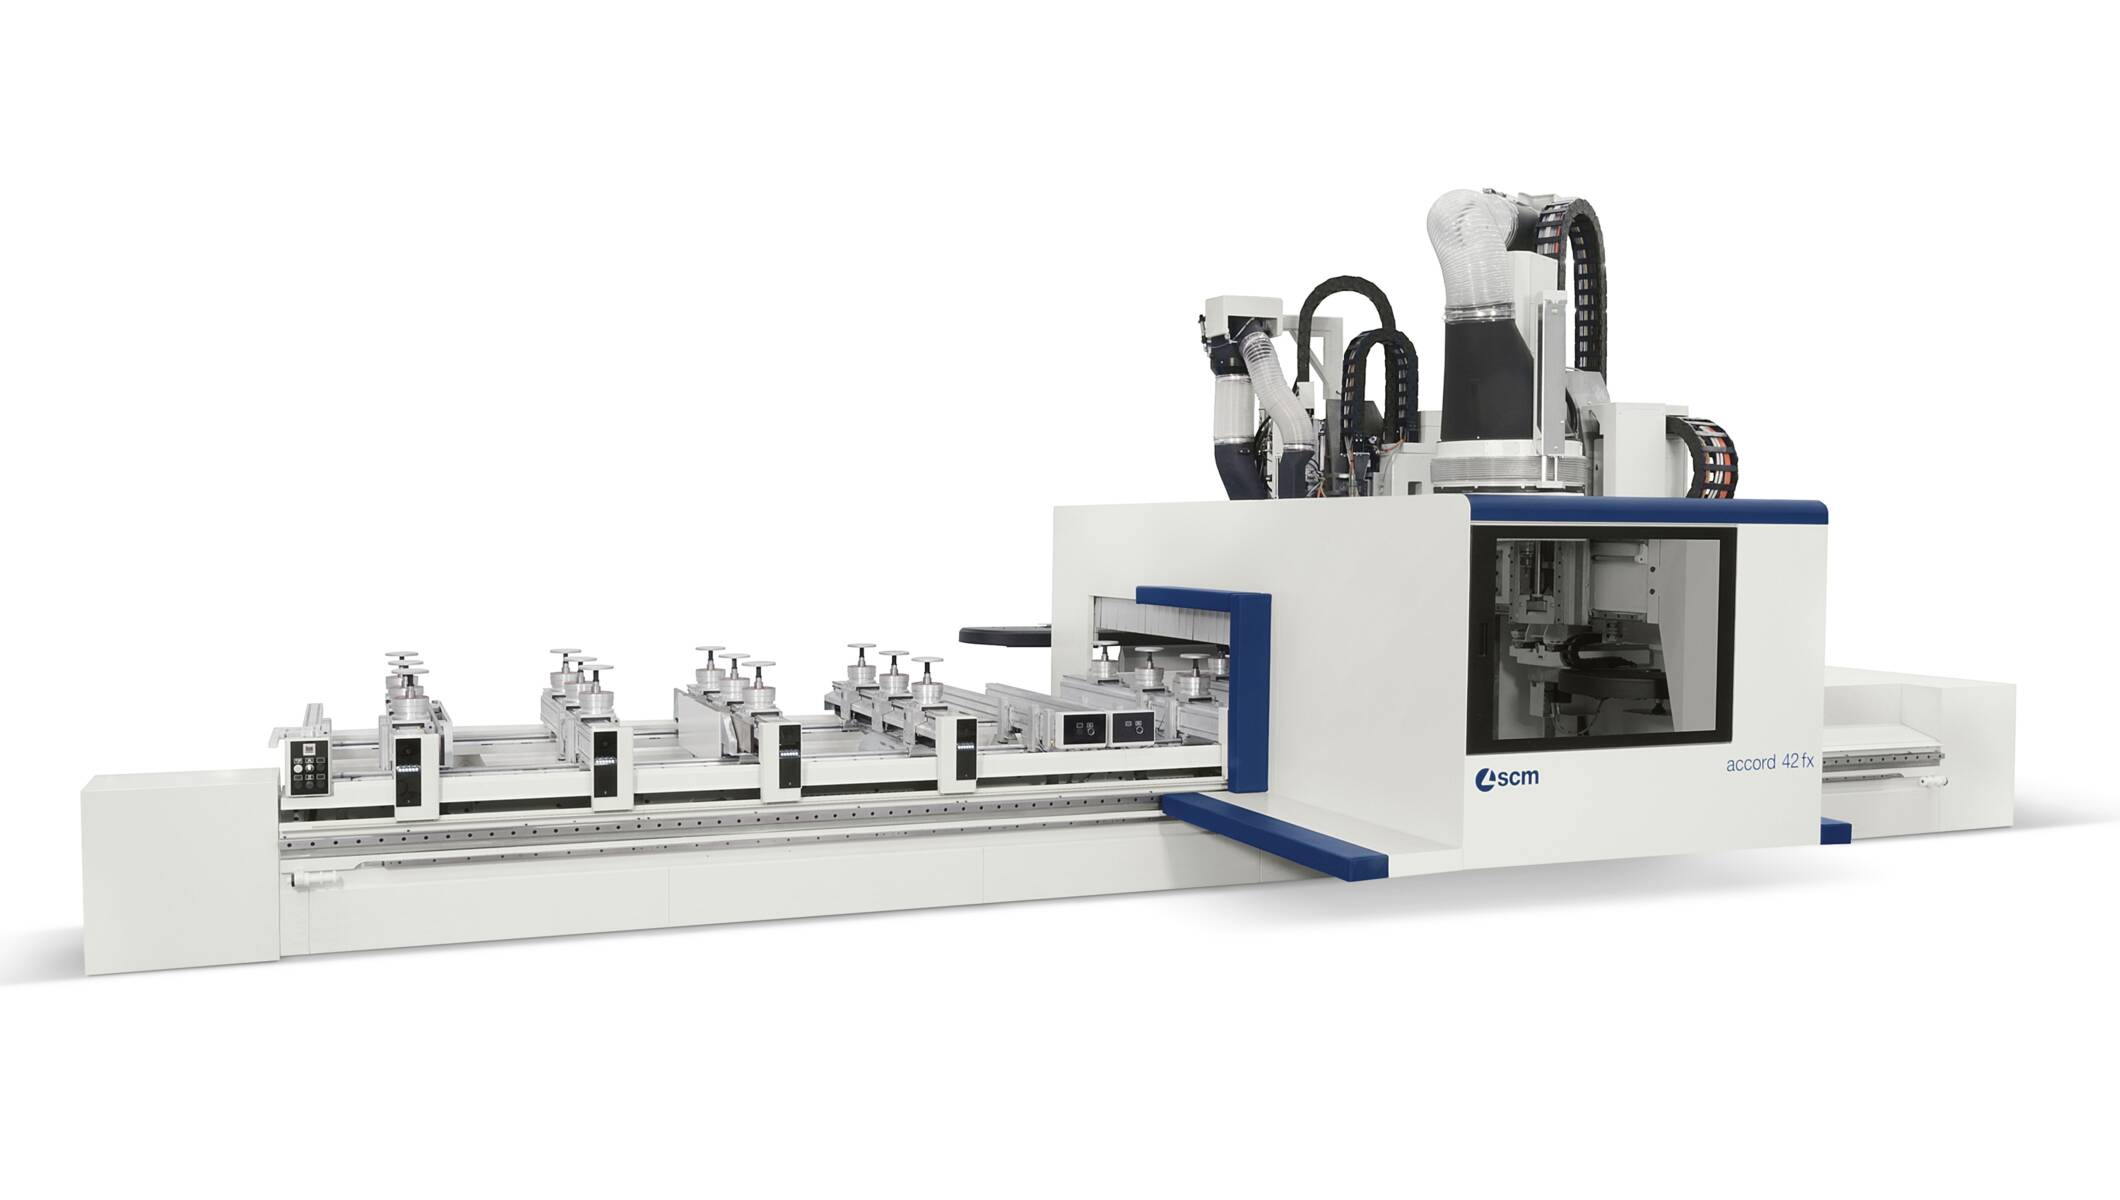 CNC Machining Centres - CNC Machining Centres for solid wood routing and drilling - accord 42 fx